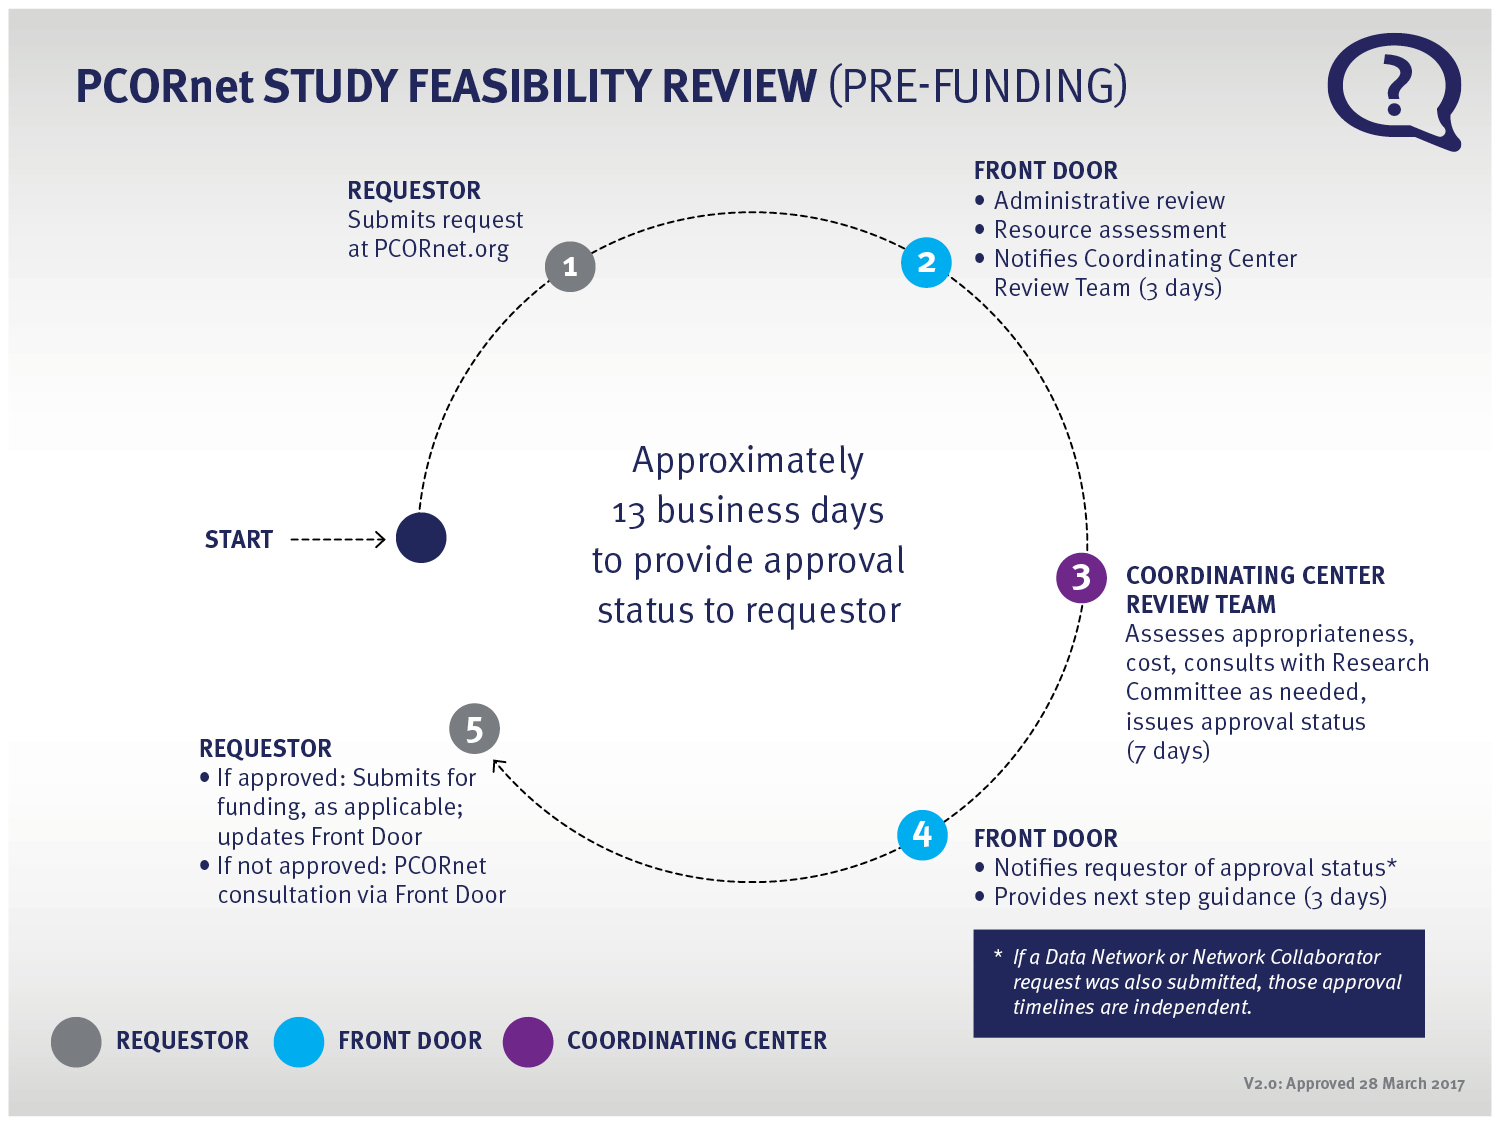 Image detailing the PCORnet Study Feasibility Review (Pre-Funding) process: Requestor, Front Door, Coordinating Center Review Team, Front Door, and then back to the Requestor. The entire process typically takes approximately 13 days.